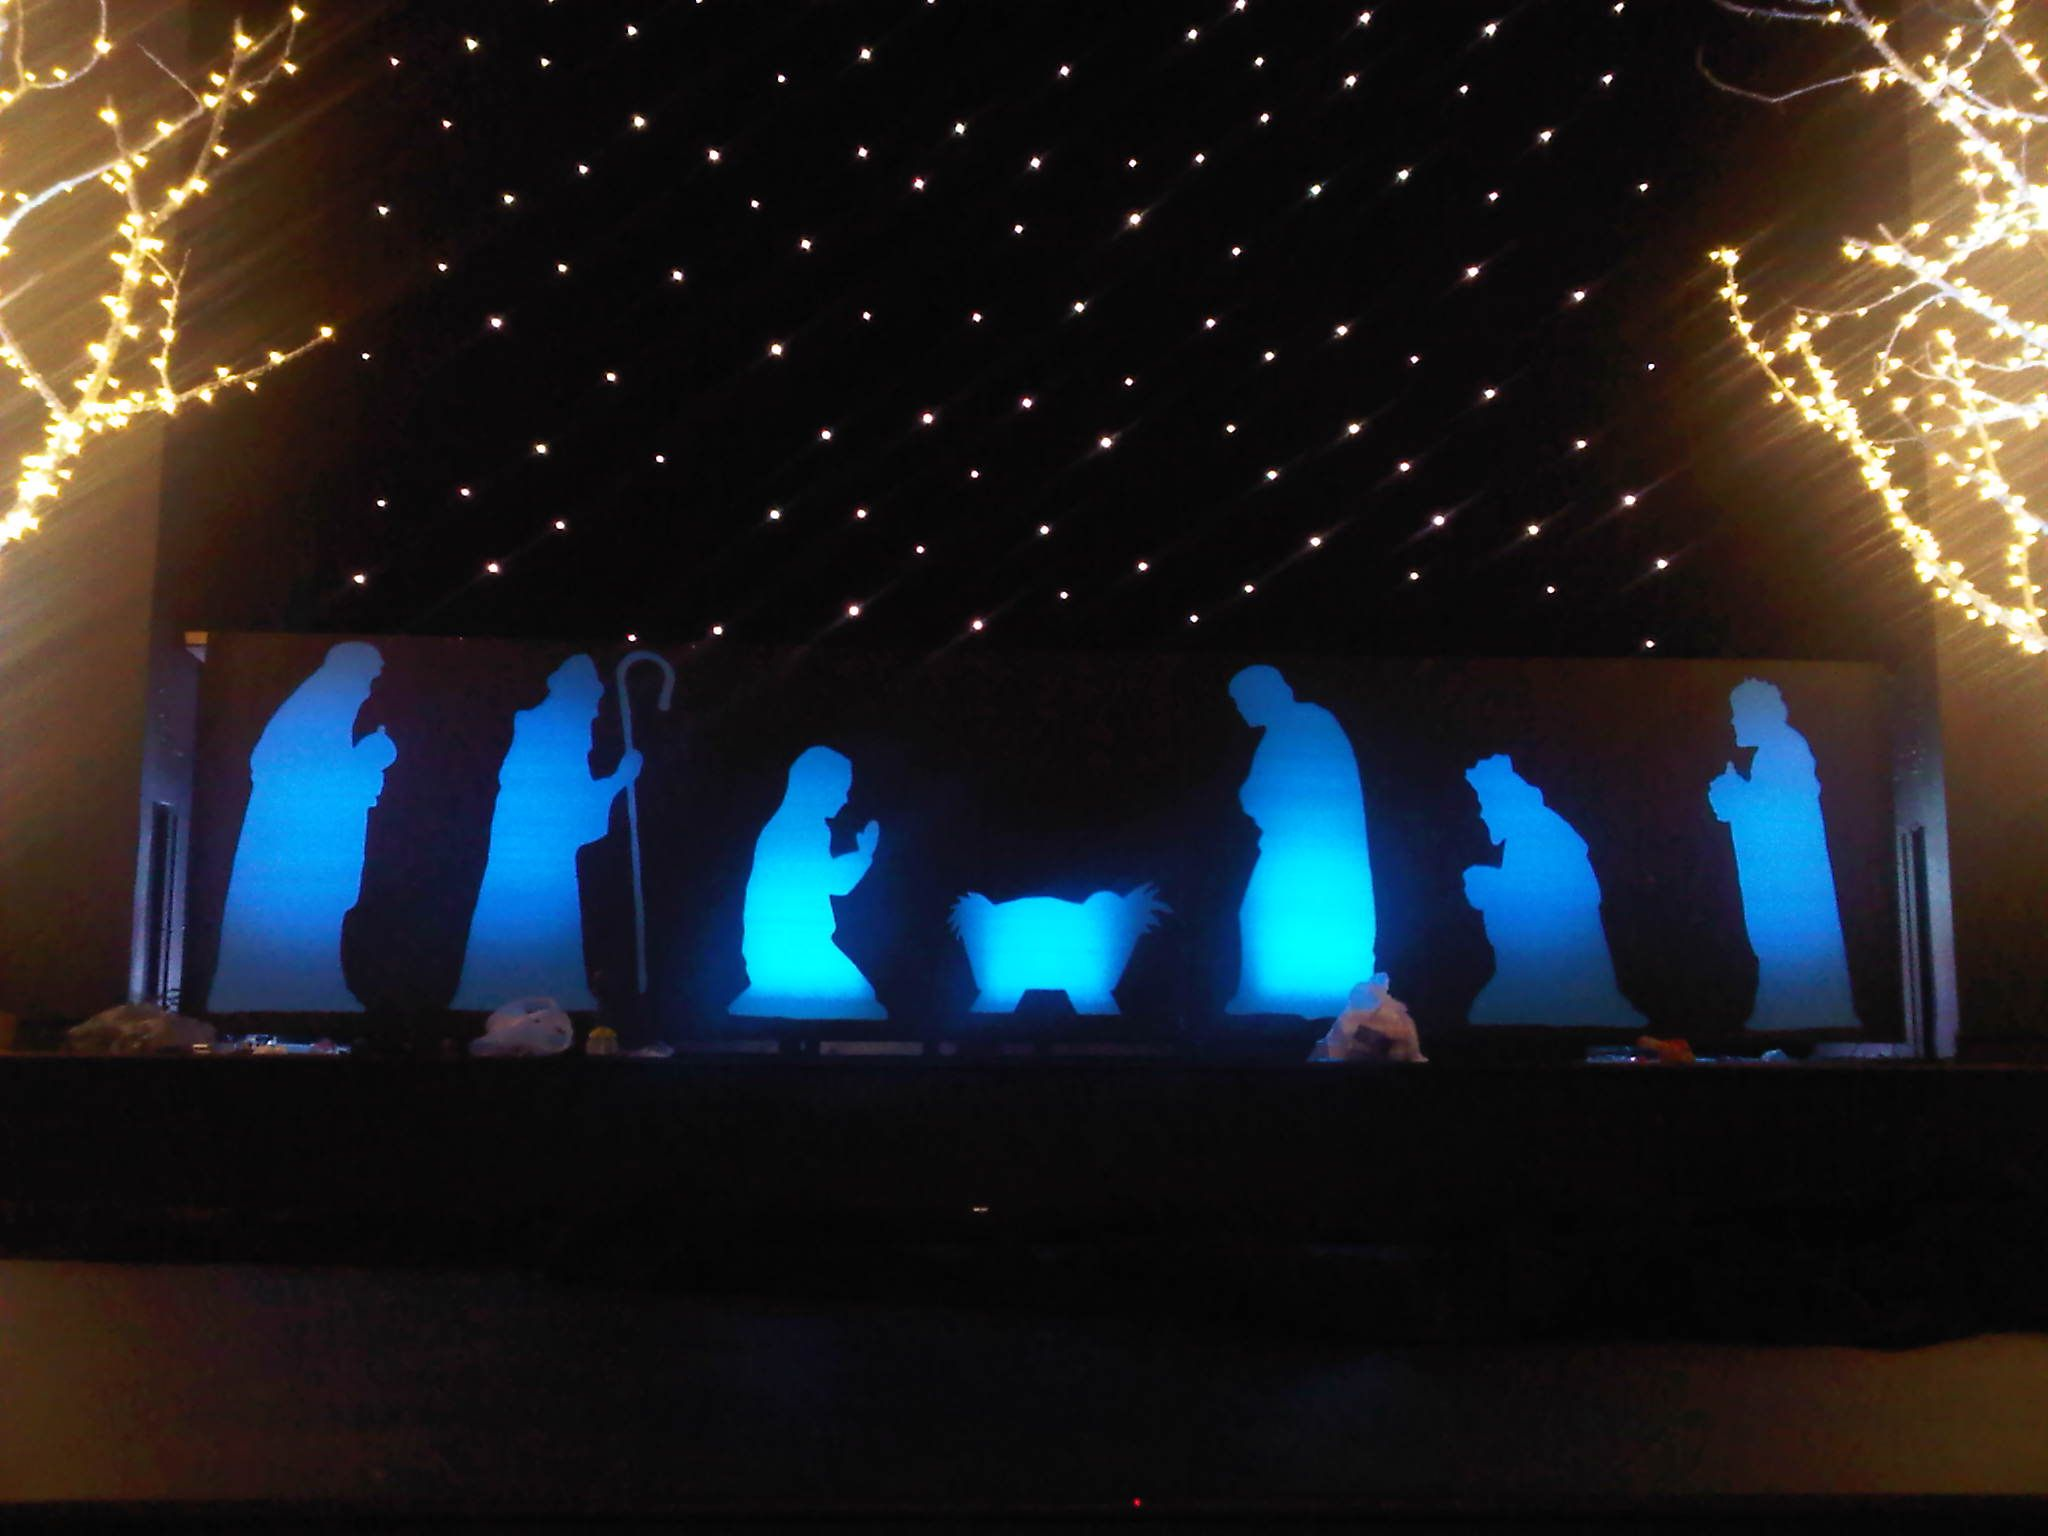 Christmas Eve Stage Design By Ashima